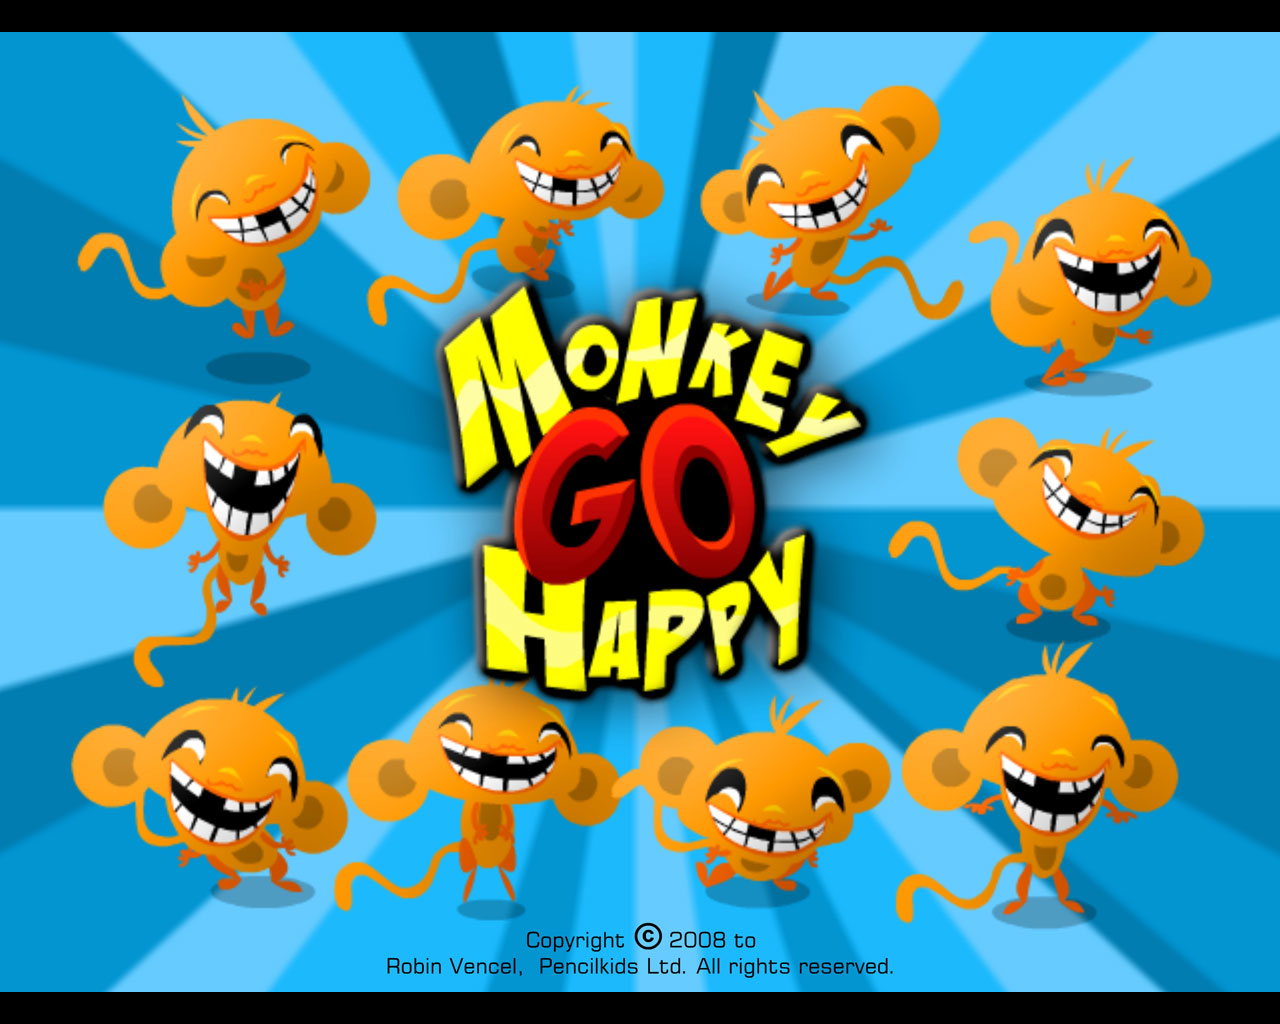 go happy monkey